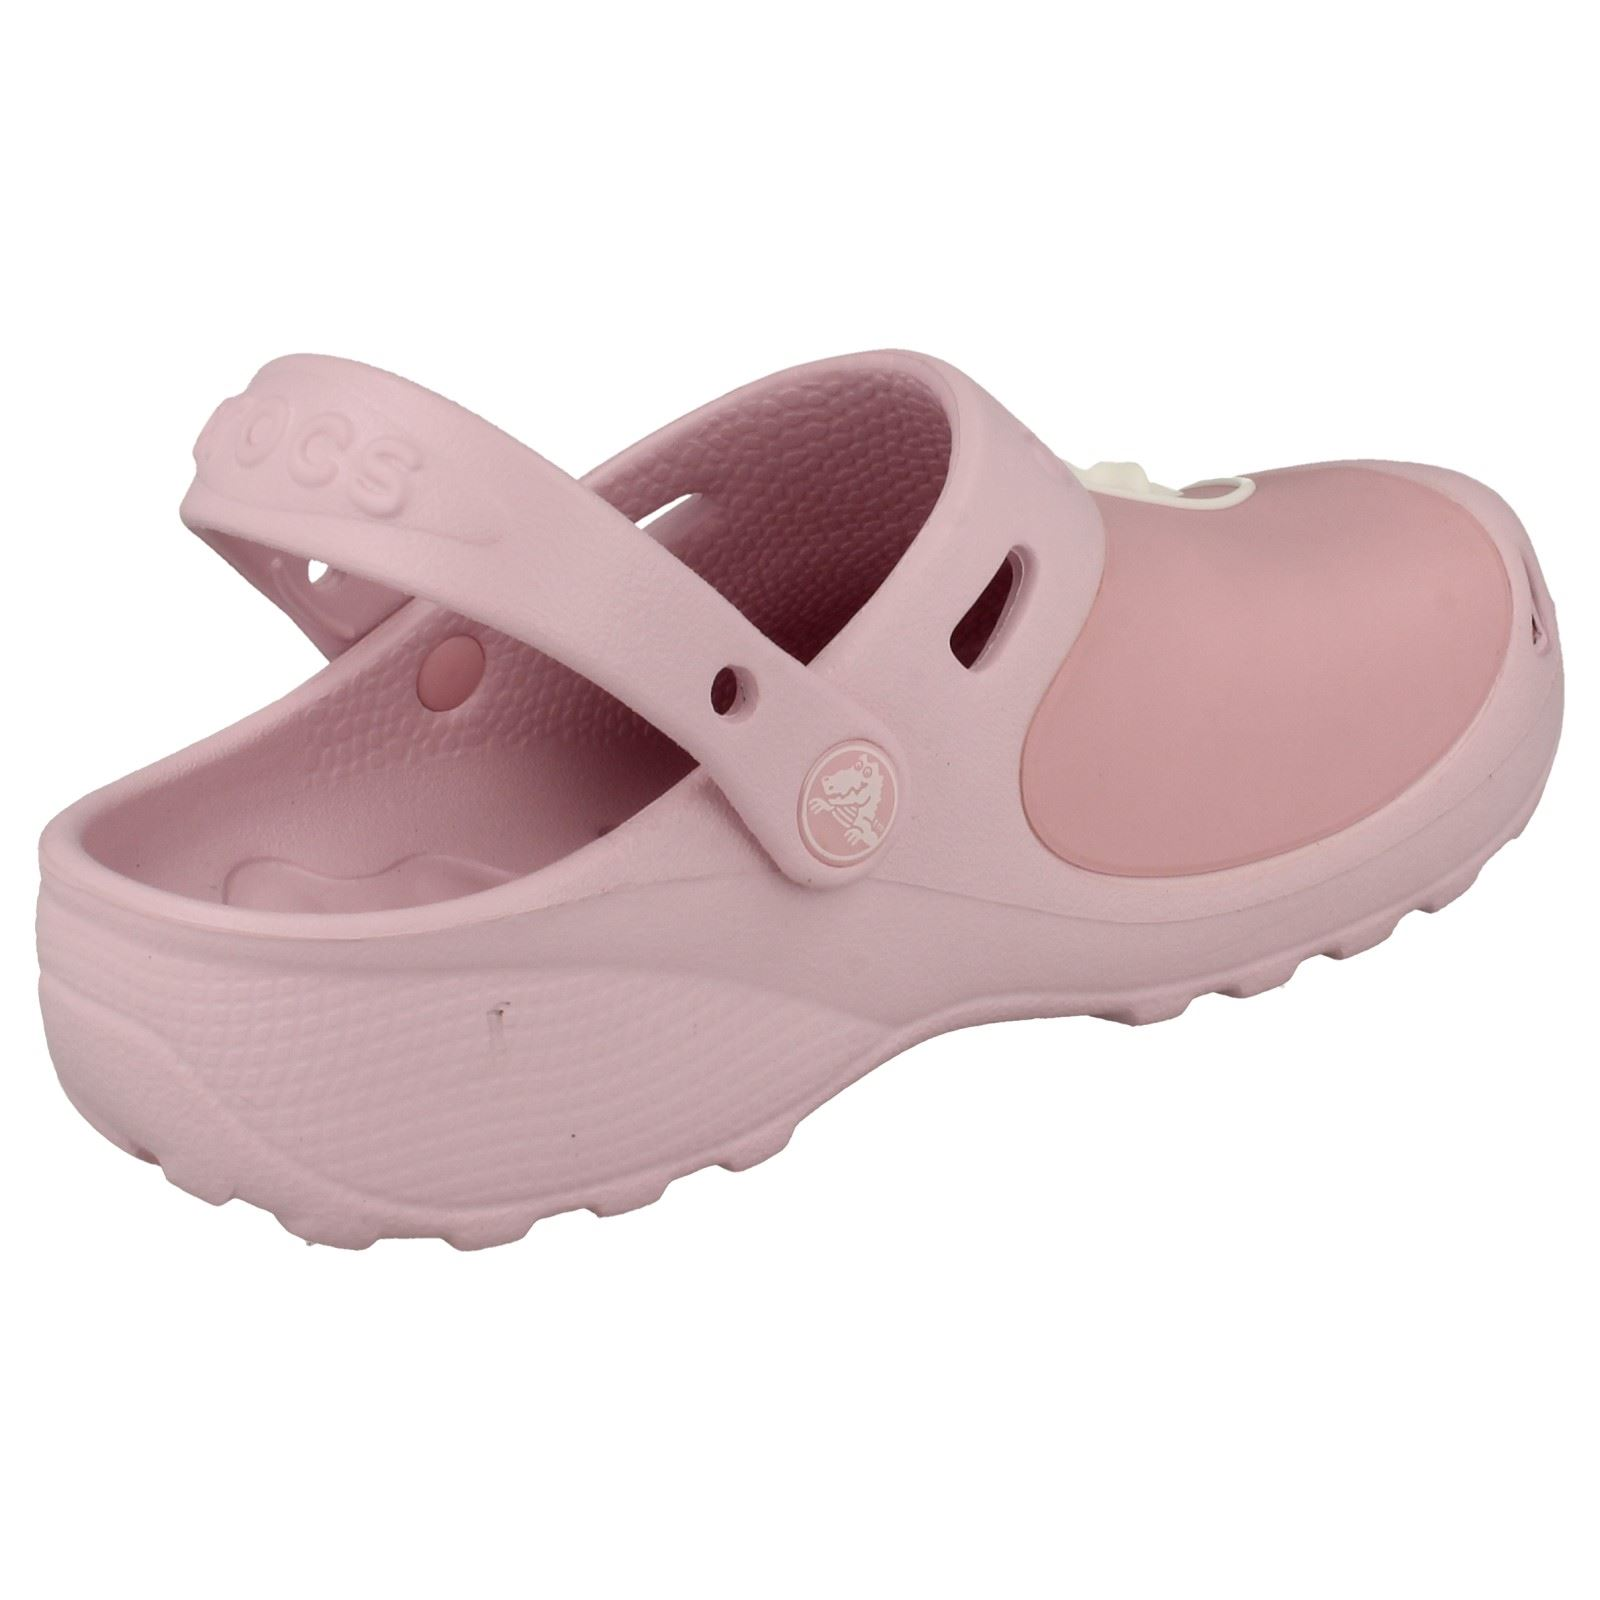 Unisexe-Crocs-Slip-On-Clogs-034-Gabe-034